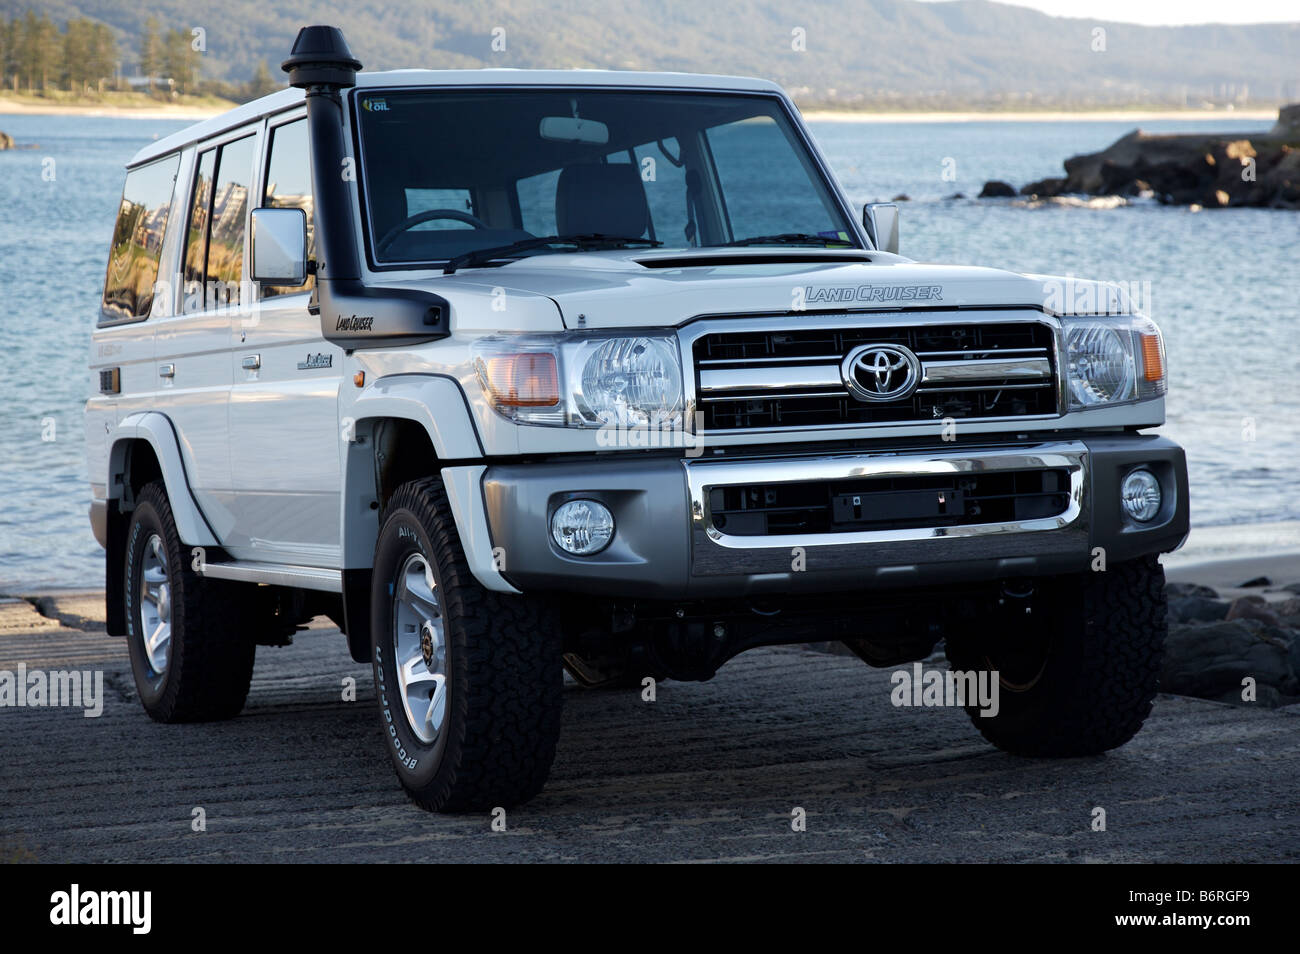 532832199638405006 likewise China Also Developing Railguns And moreover Dubai Police Cars Fleet Add A Tank Video further 1182574635 additionally Photos Of Lst 325 Floating Tribute To The Wwii Generation. on land cruiser boat